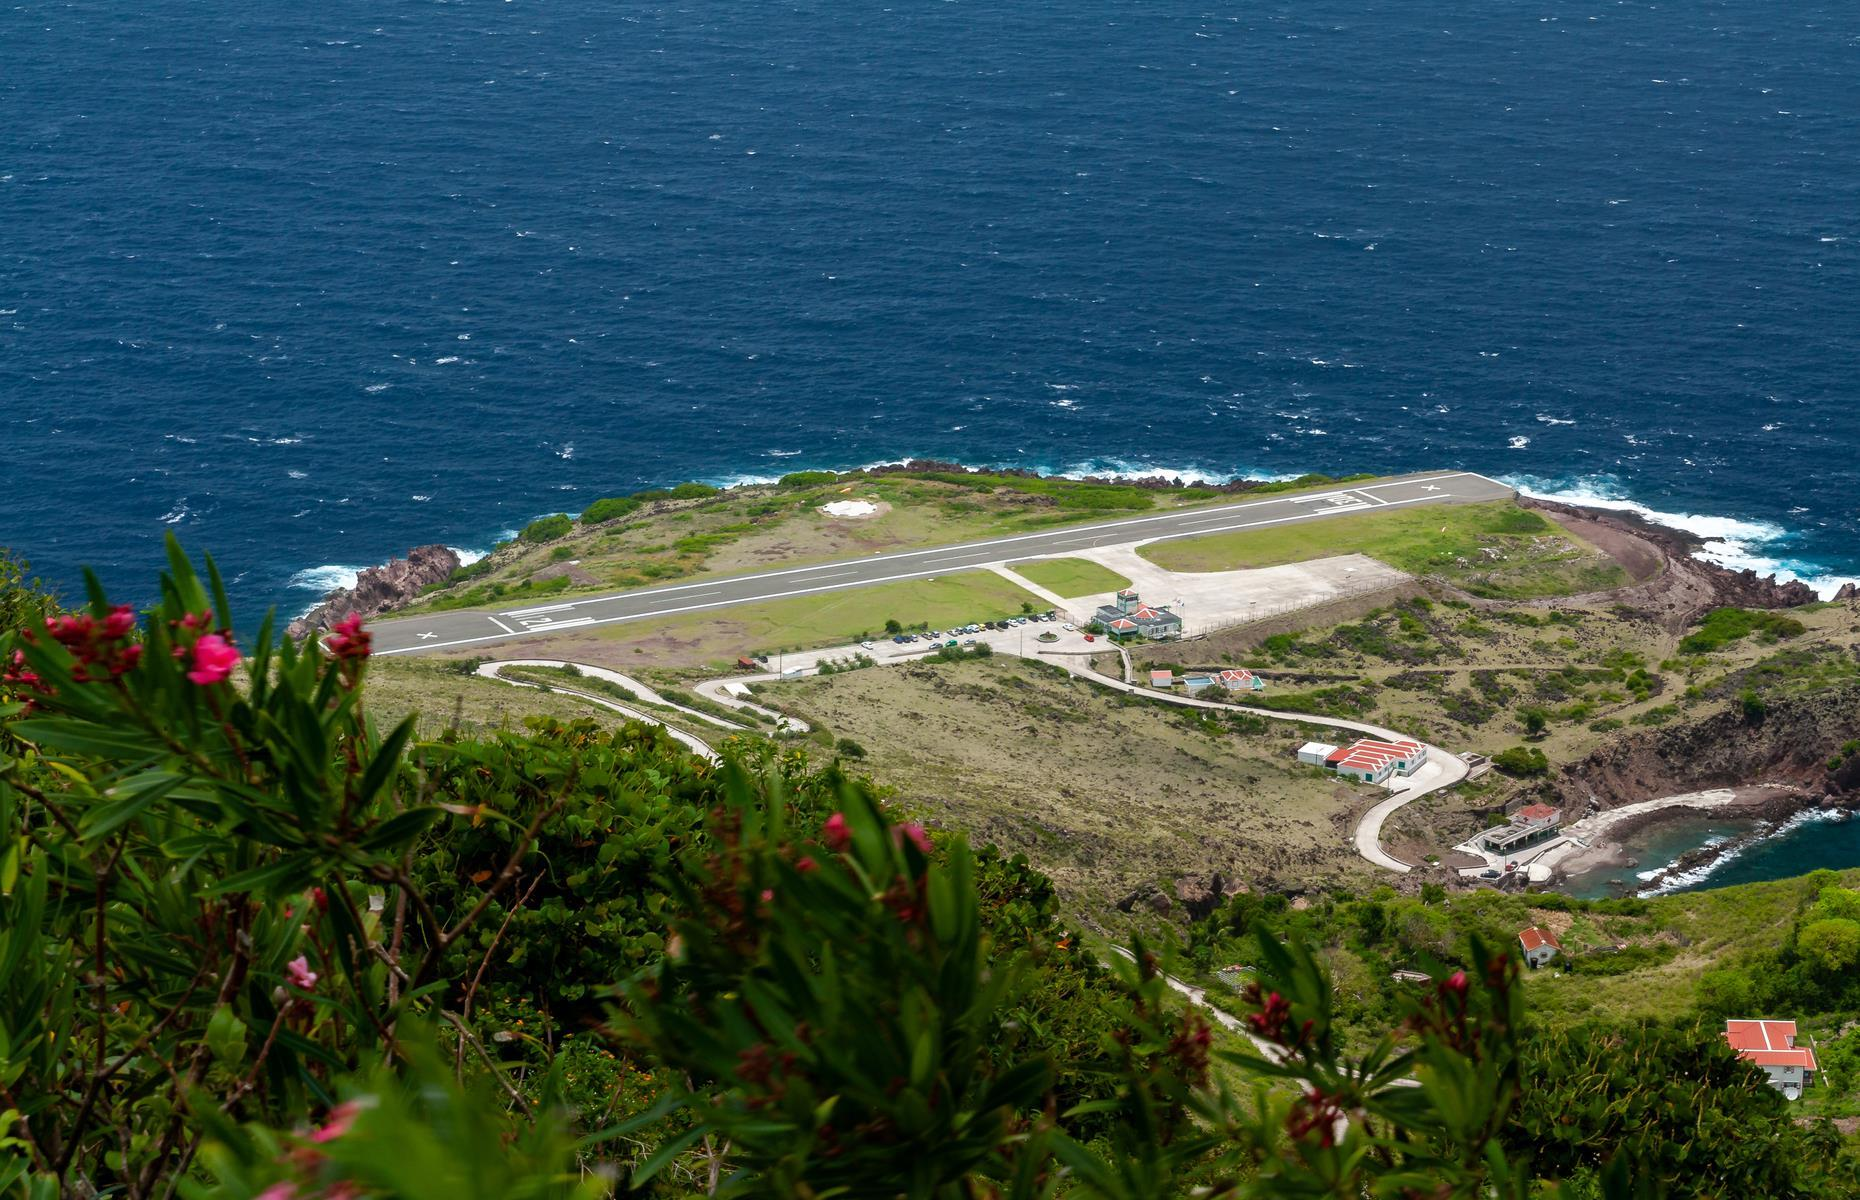 Slide 35 of 36: The borders on the tiny Caribbean island of Saba are currently still closed, but this airport is one to bookmark for a later date. Juancho E. Yrausquin is notorious for its scary runway – at only 1,312 feet (400m) long it's the world's shortest commercial runway. Not only that, but the airstrip is flanked by precipitous cliff drops at both ends.